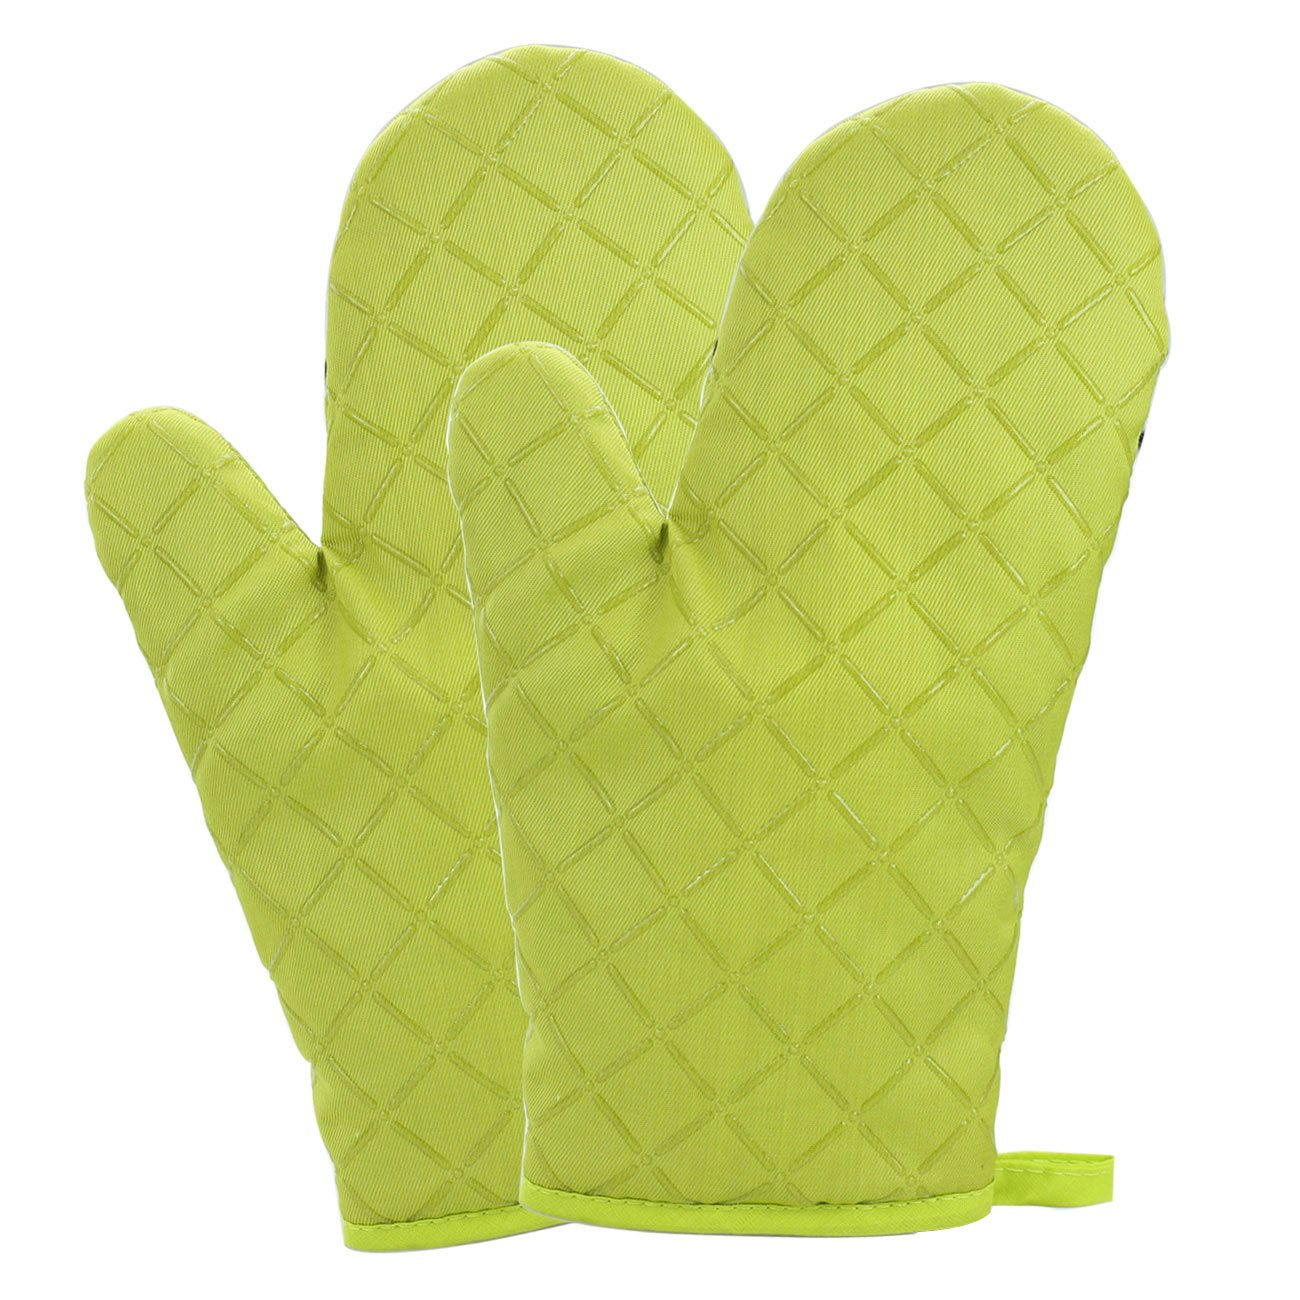 OVOS Cotton Oven Mitts Flame Retardant Quilted Silicone Coating Heat Resistant Potholder Gloves Microwave Oven Glove for Kitchen BBQ (Yellow)